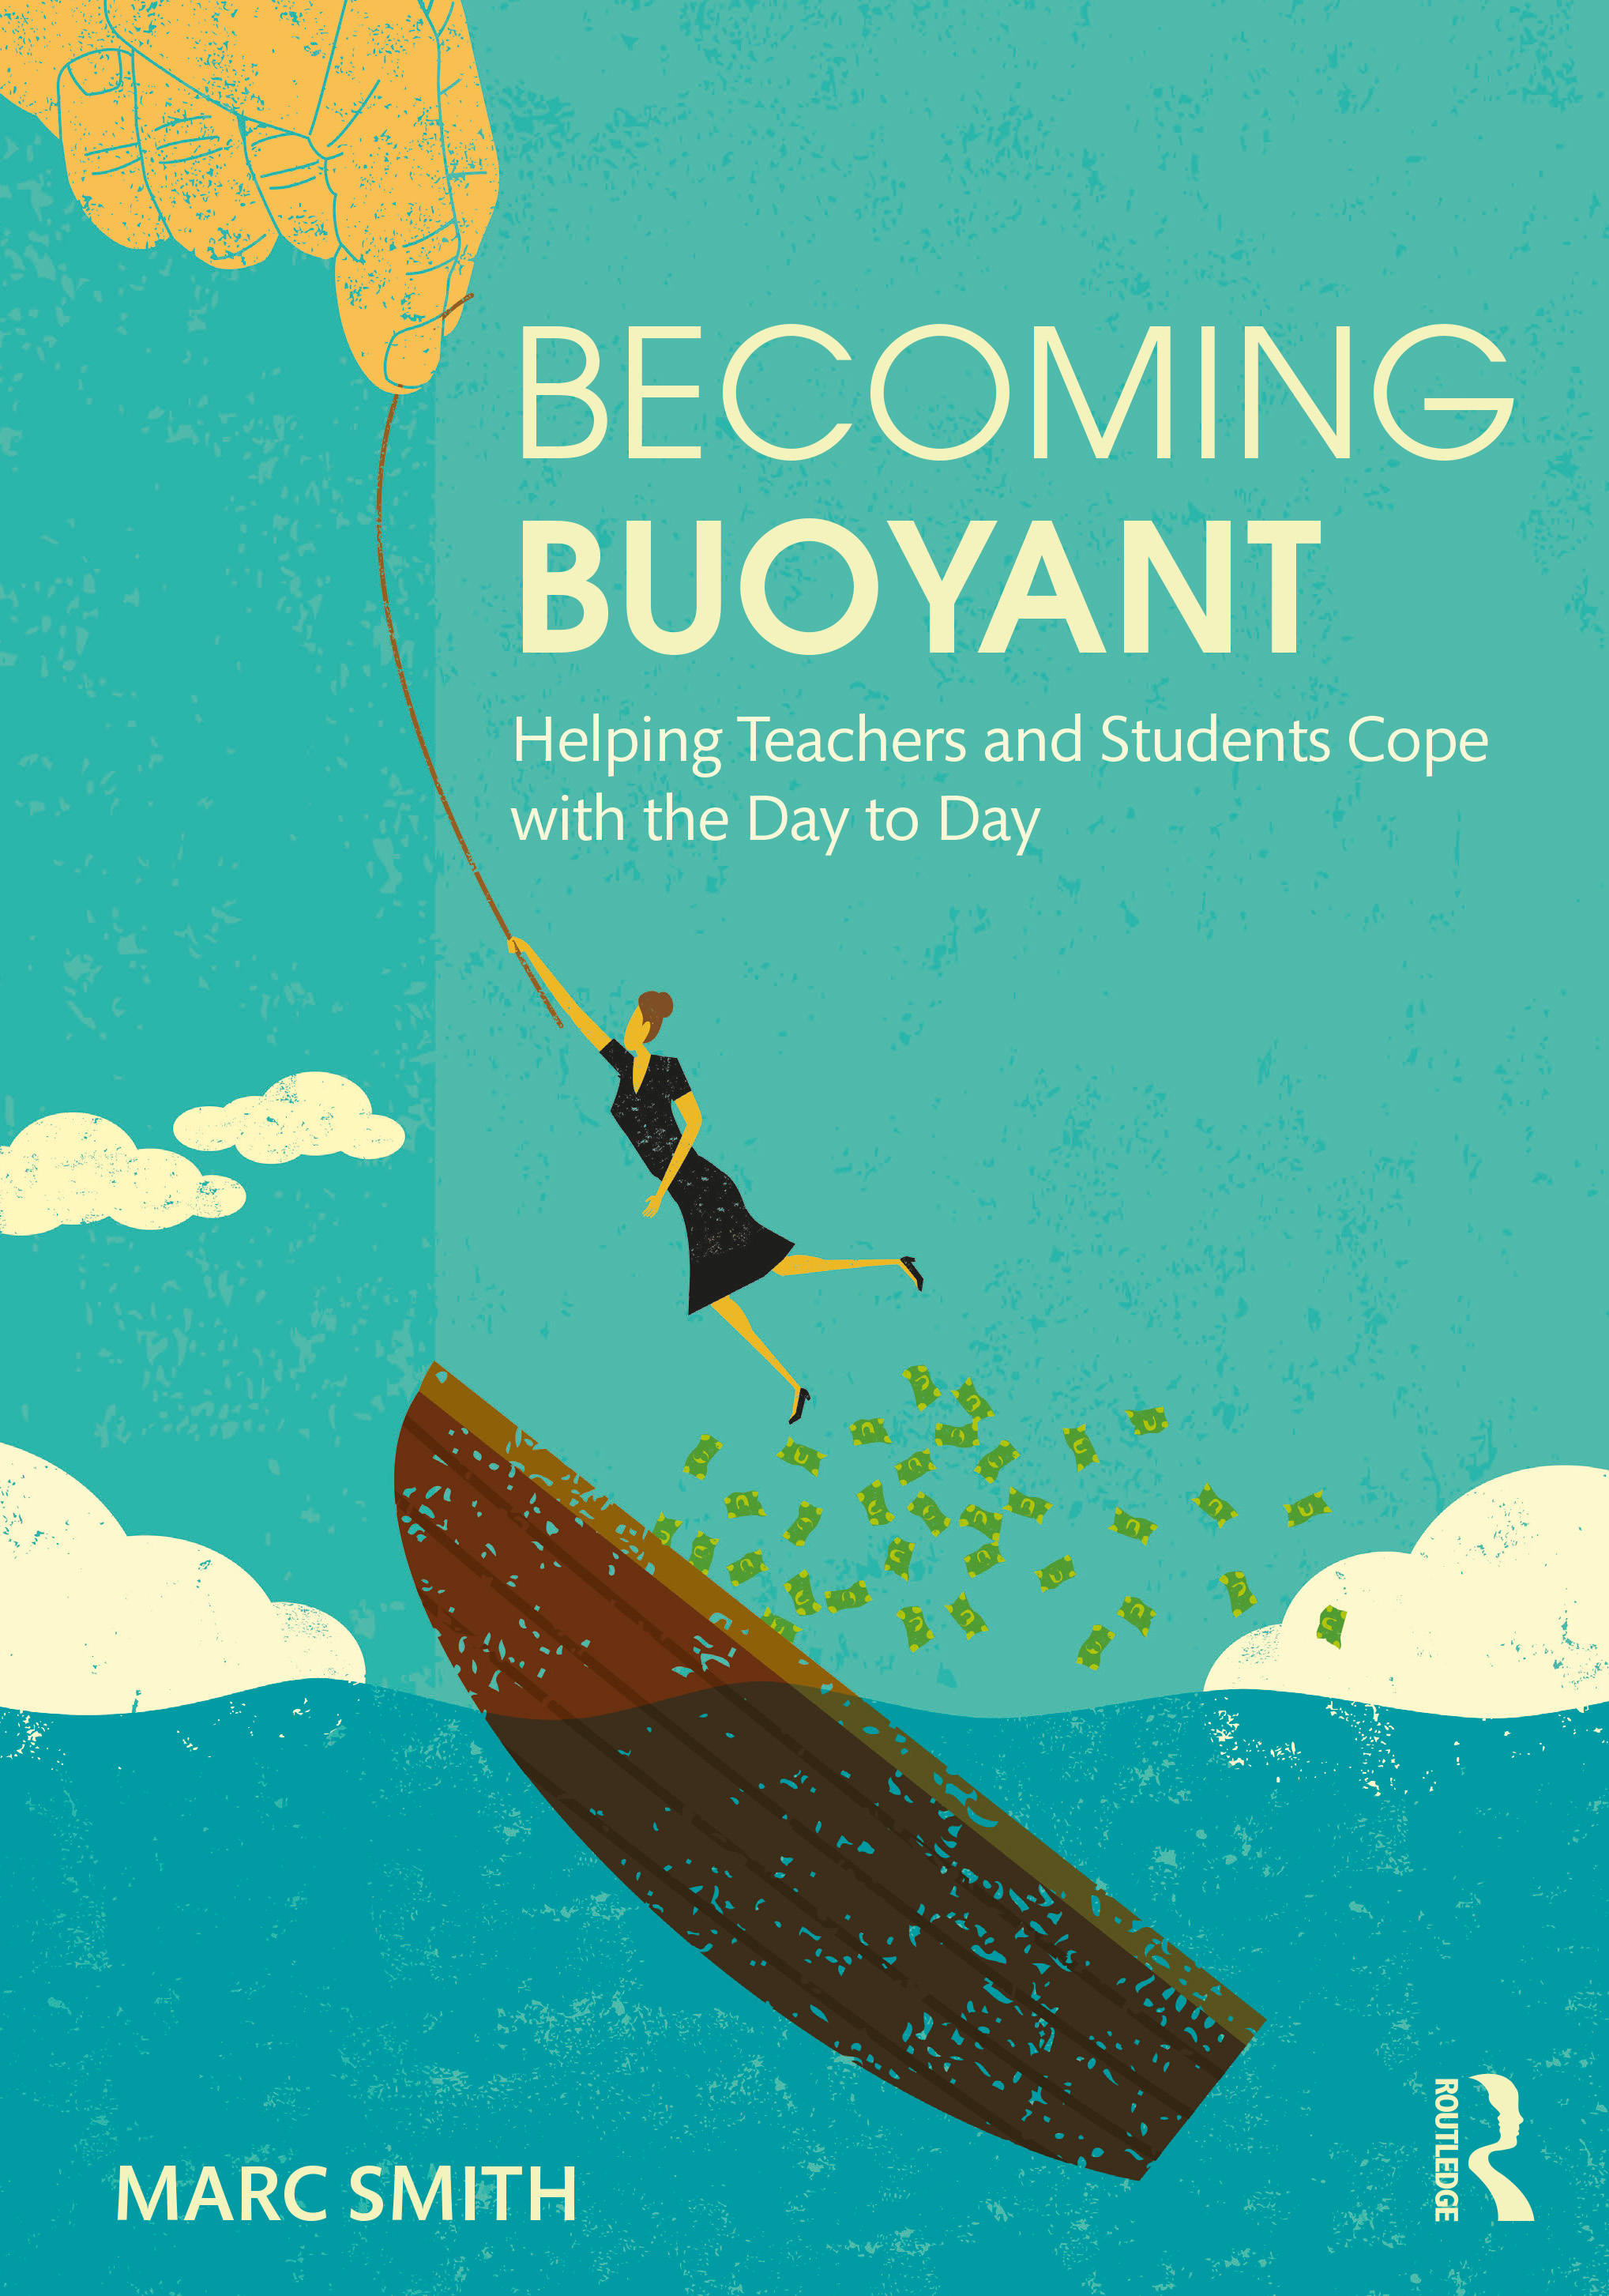 Becoming Buoyant: Helping Teachers and Students Cope with the Day to Day